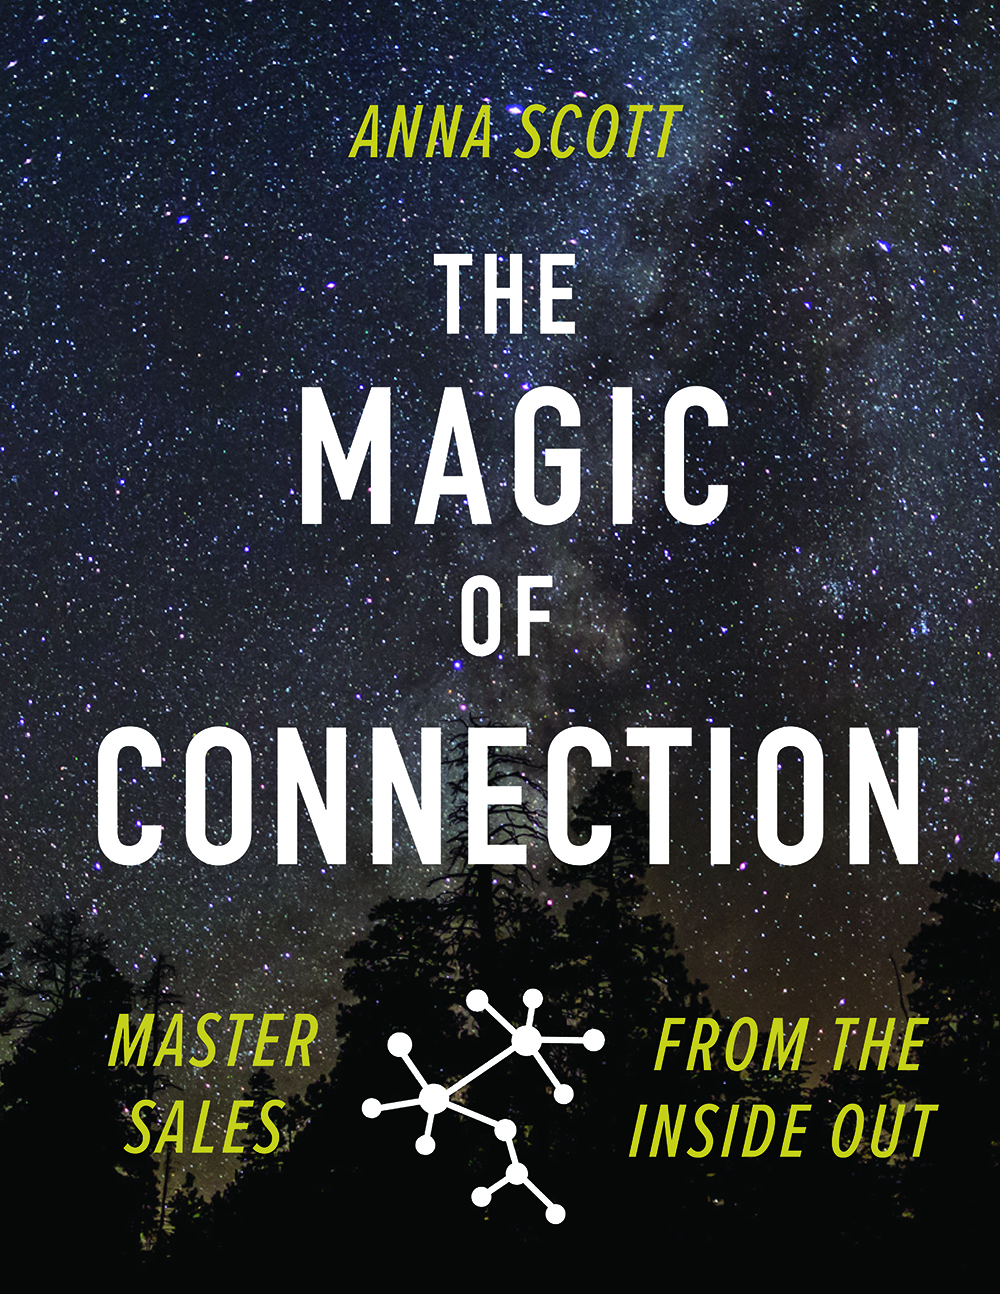 MagicofConnect_Cover2-01.jpg